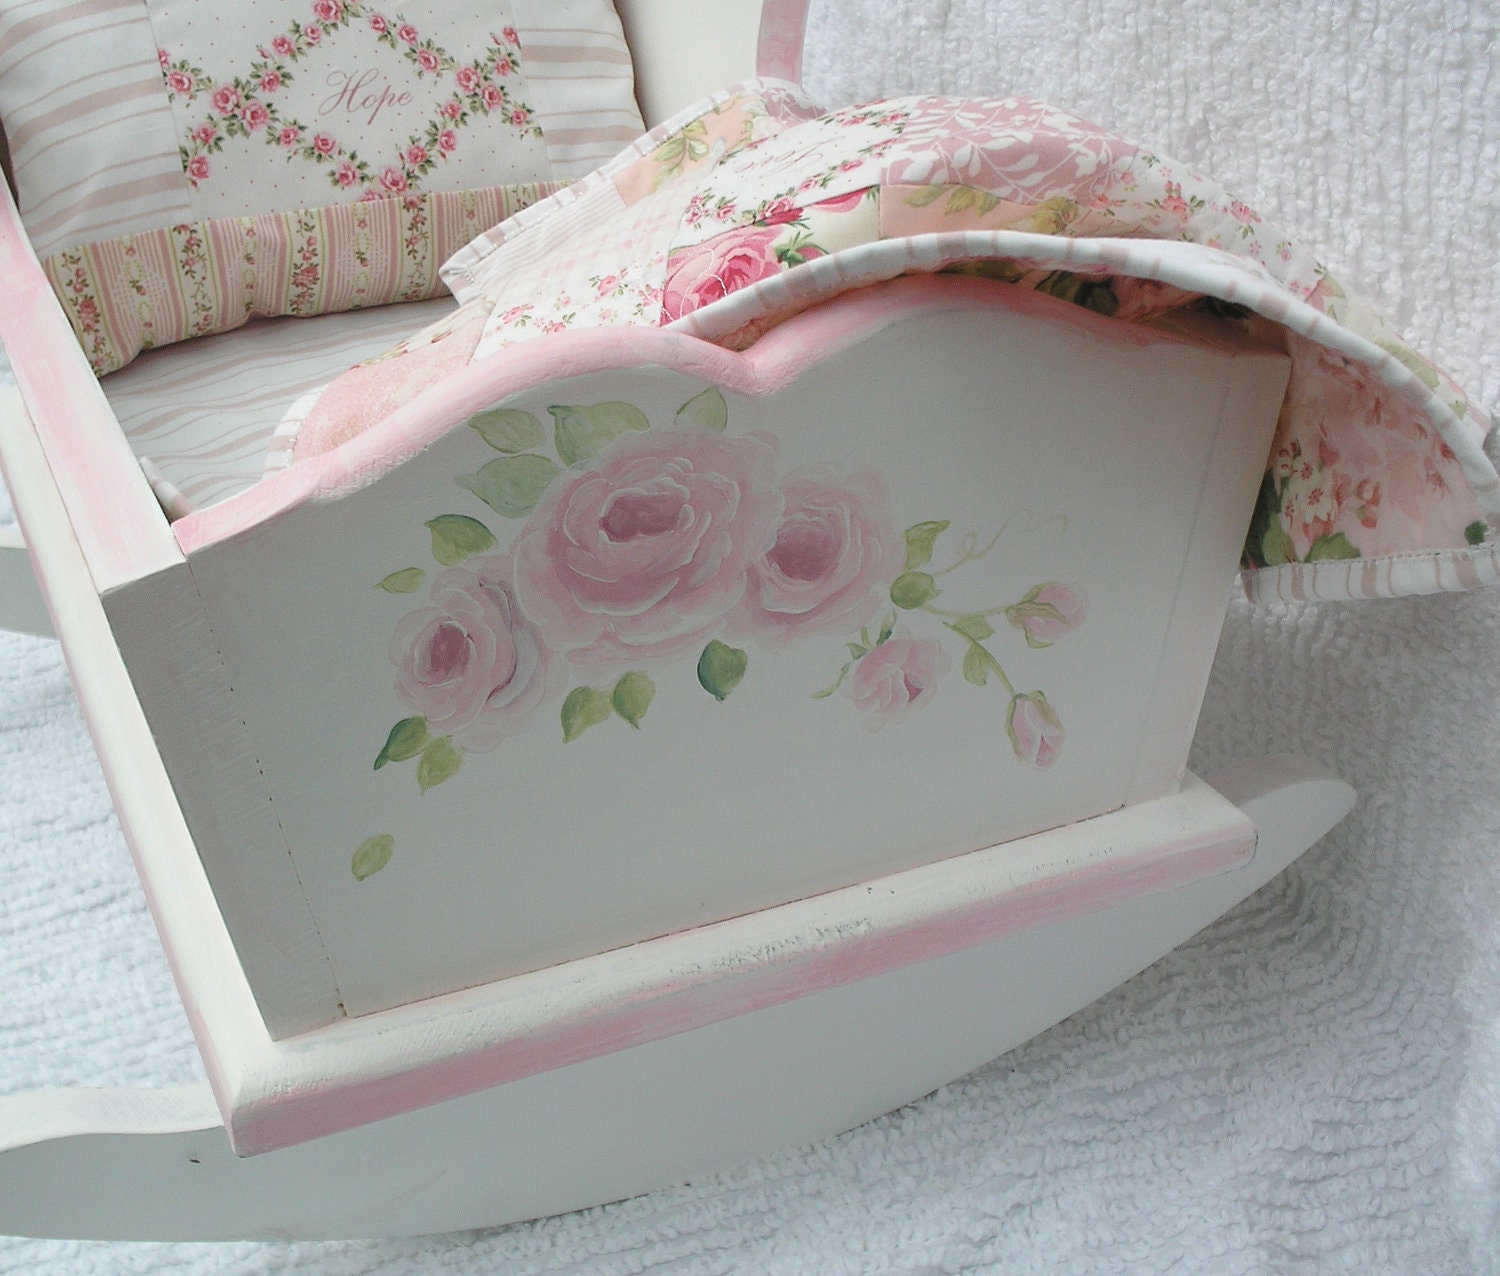 Doll Cradle Hand Painted With Pink Roses By Upcyclesisters